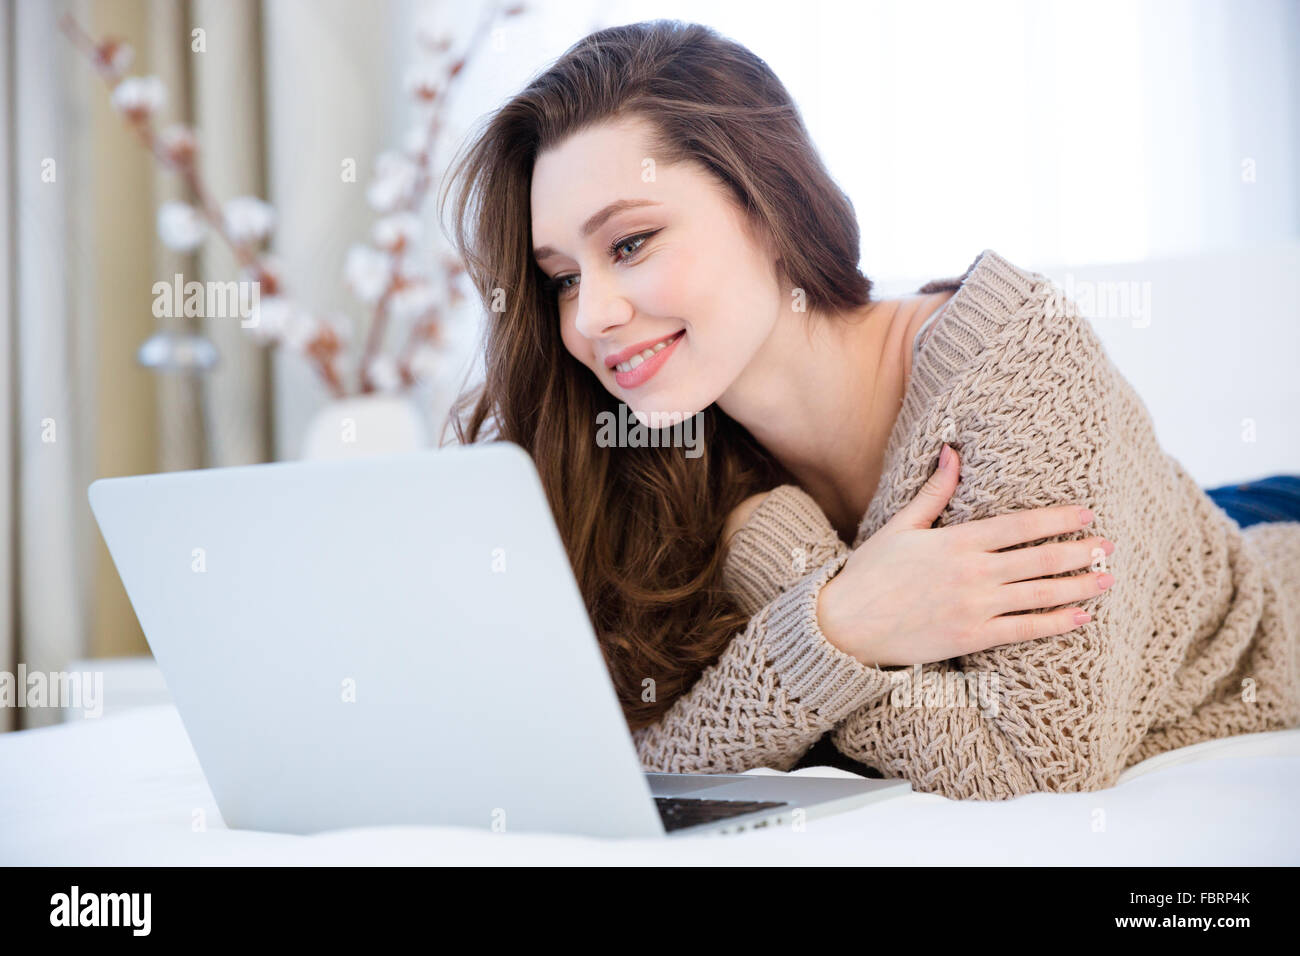 Smiling pretty young woman in beige knitted sweater lying on bed with laptop in the room Stock Photo